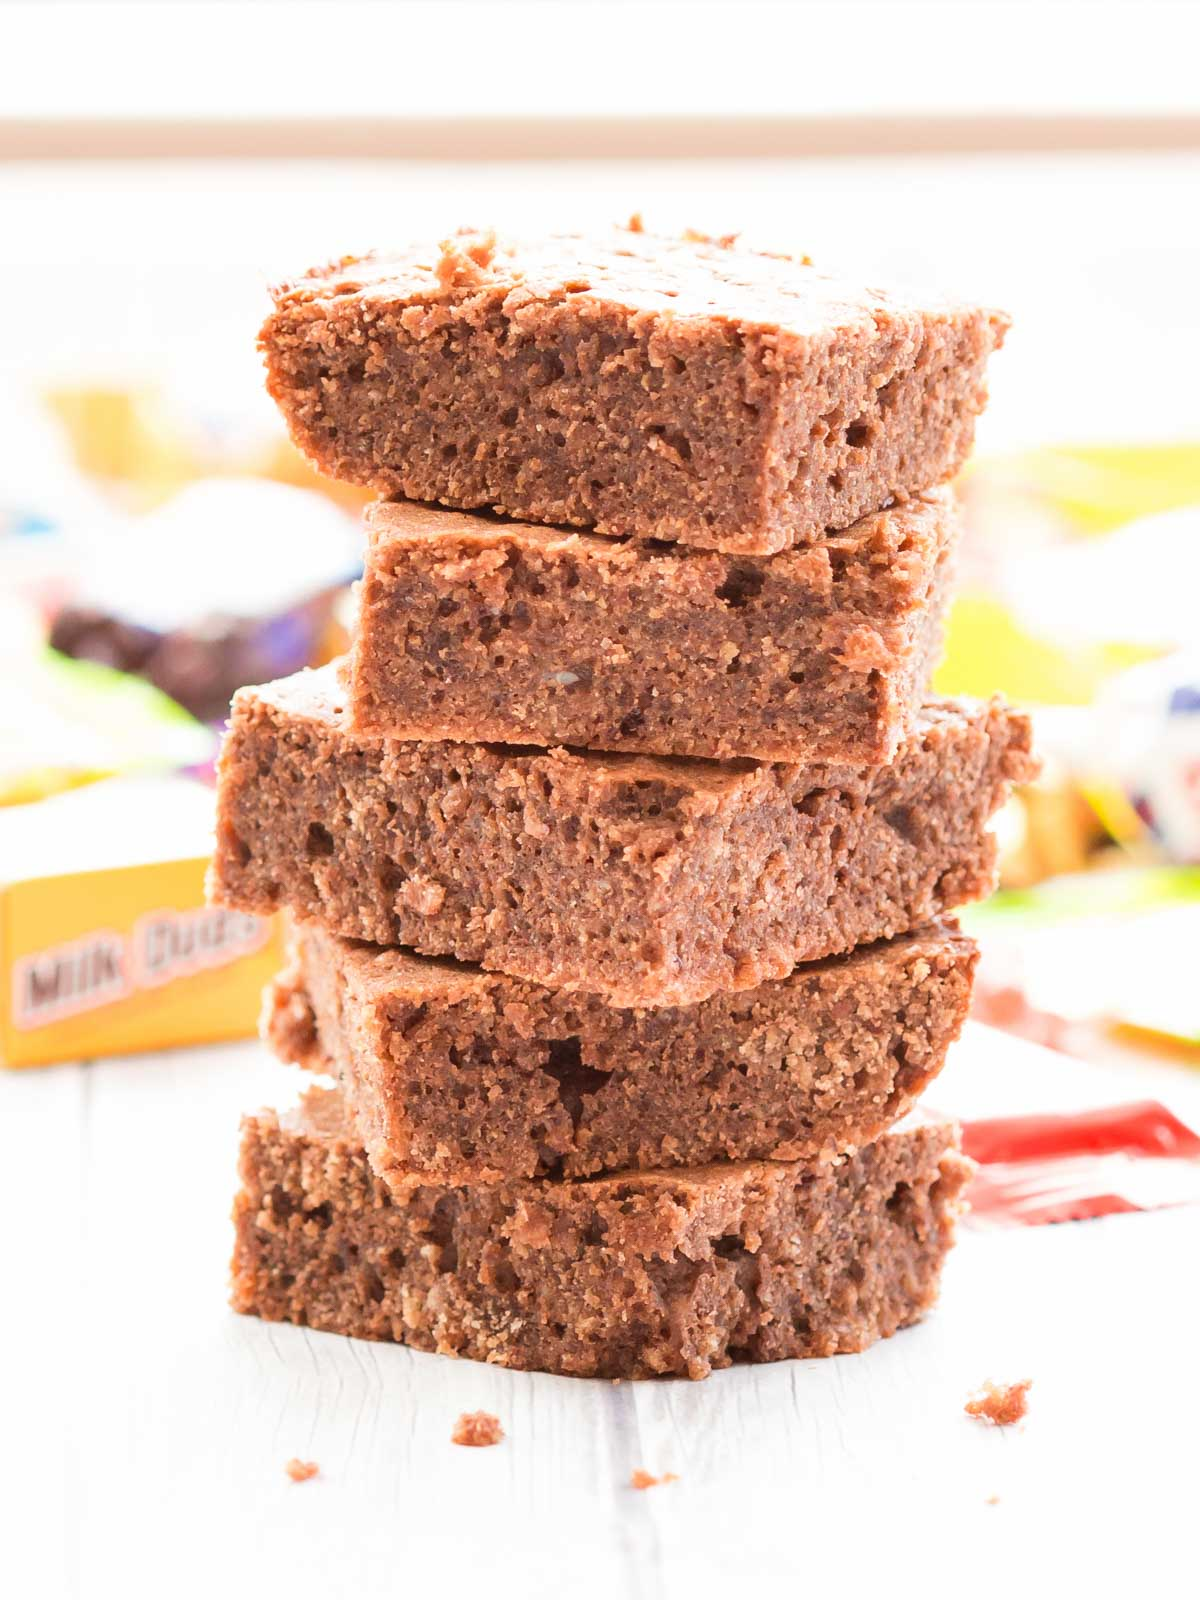 Put your leftover holiday candy to good use in this versatile brownie recipe!